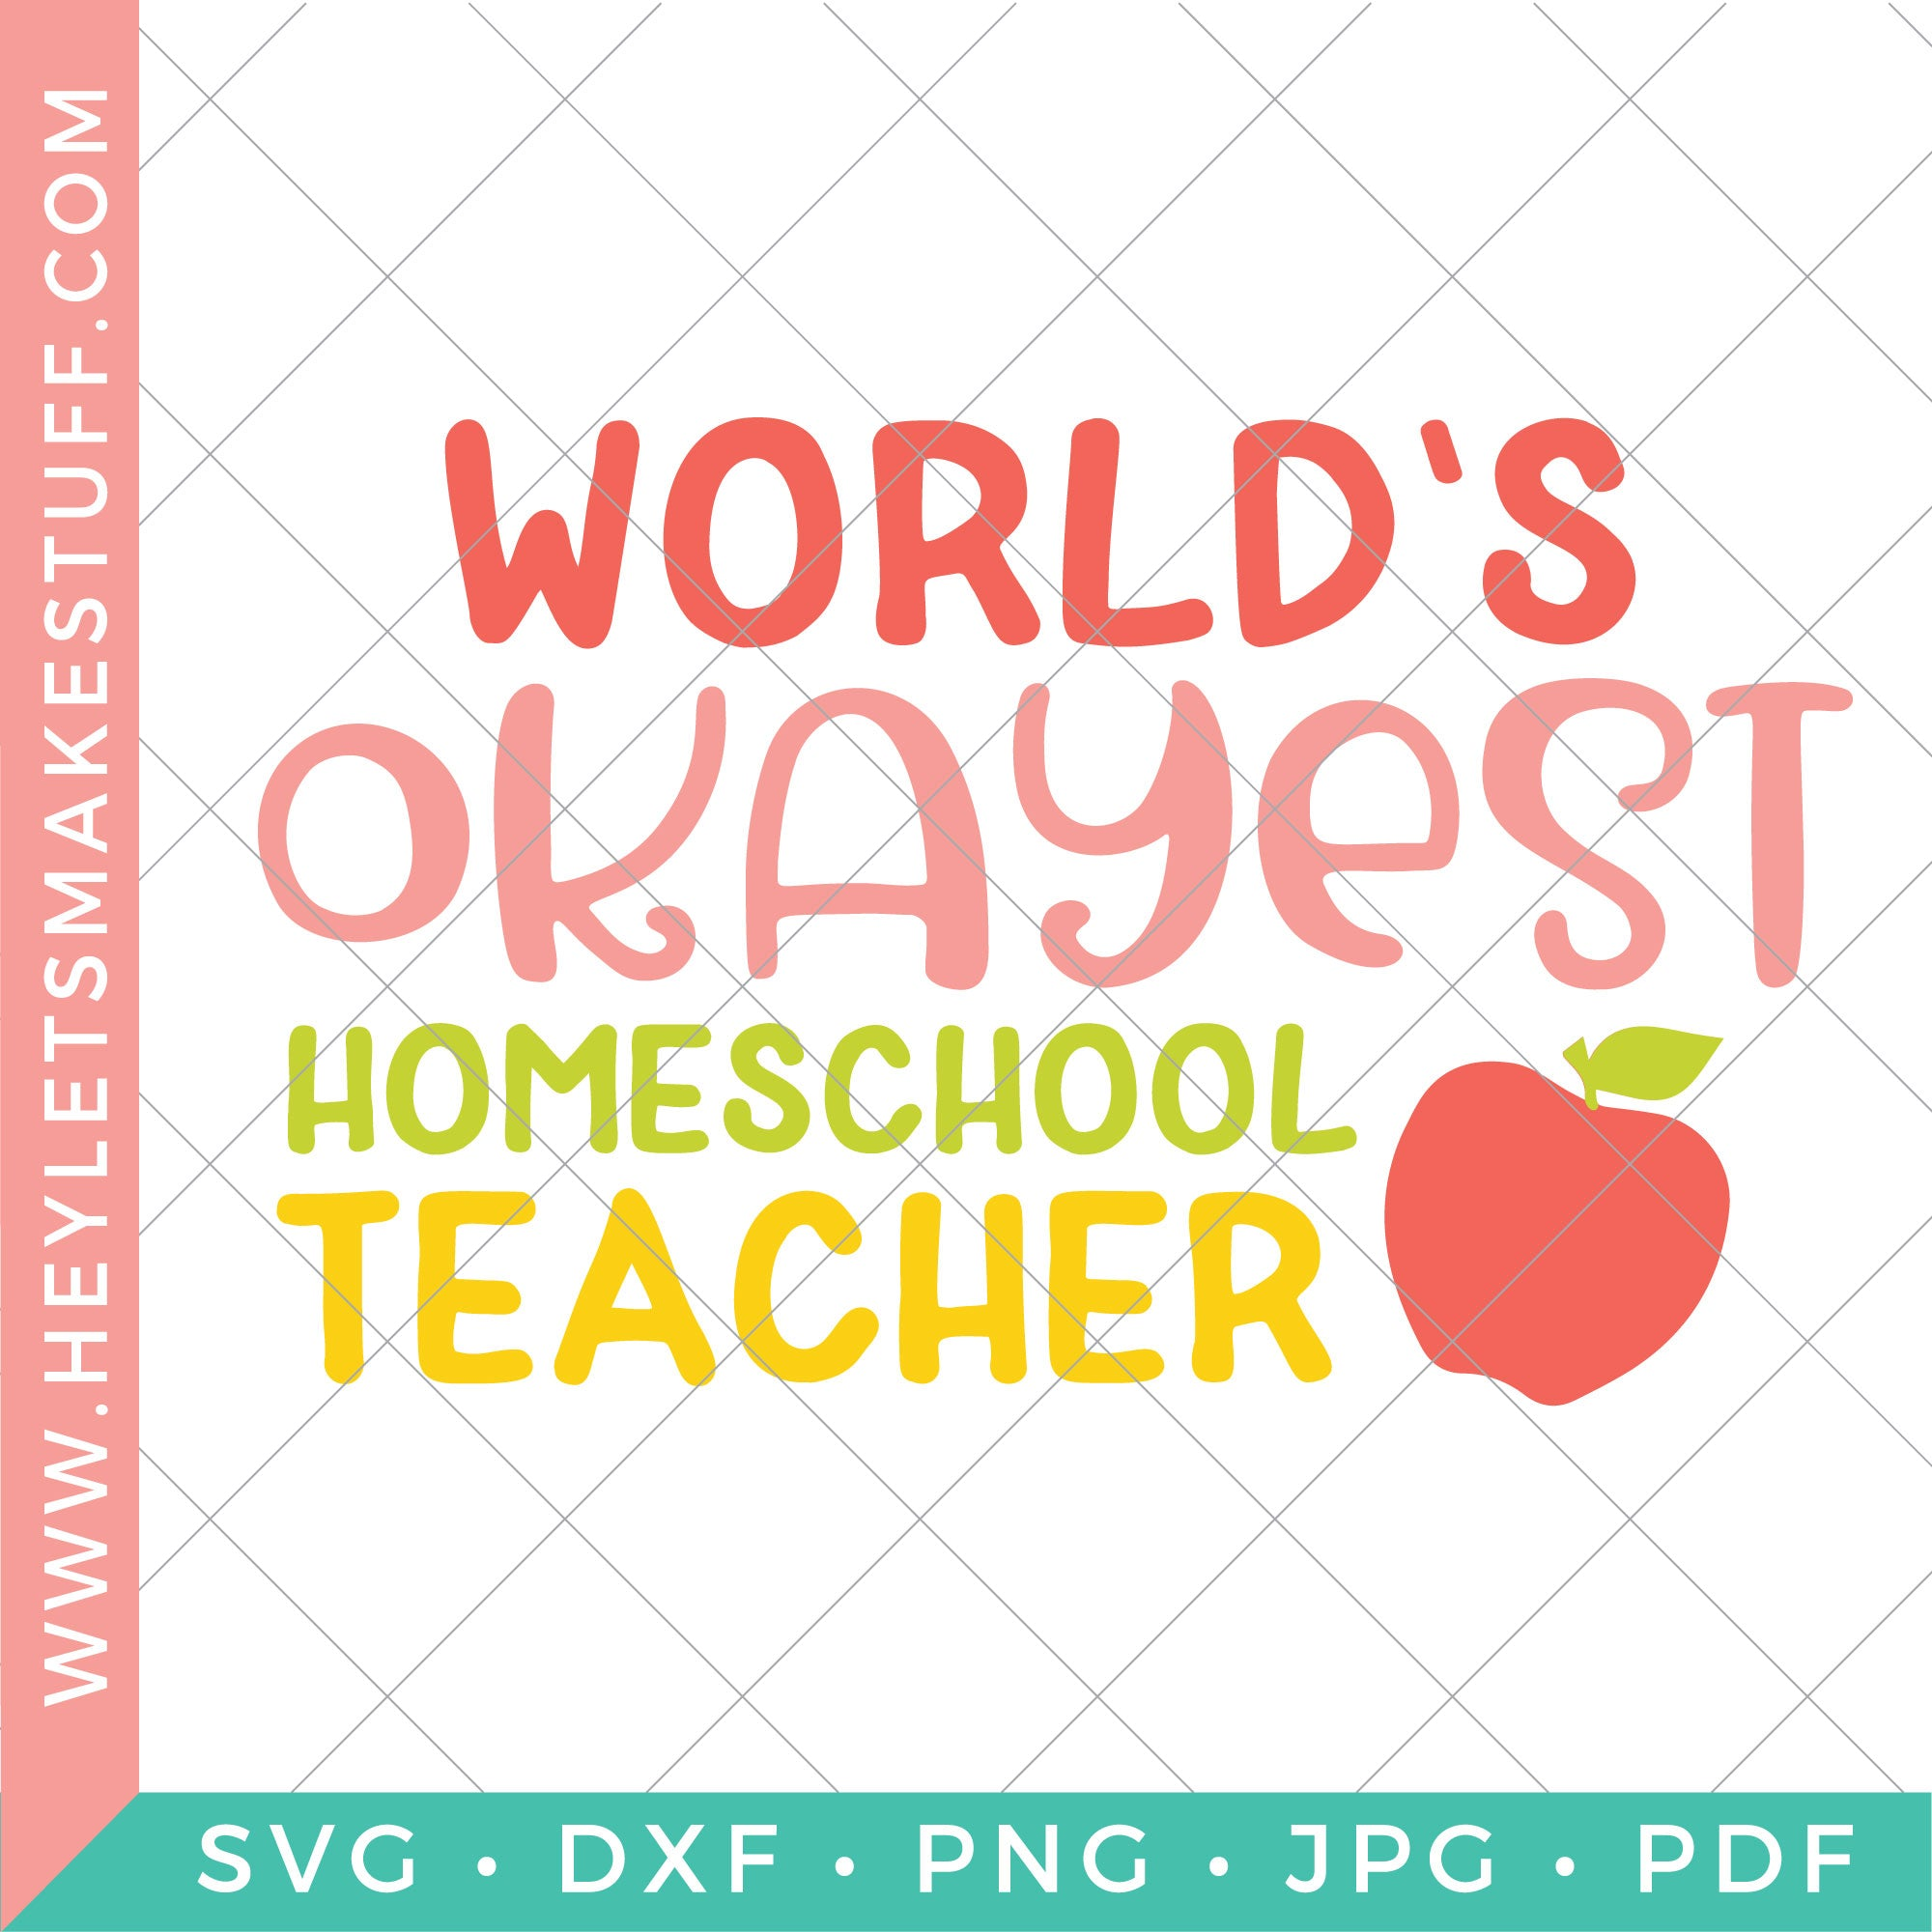 World's Okayest Homeschool Teacher